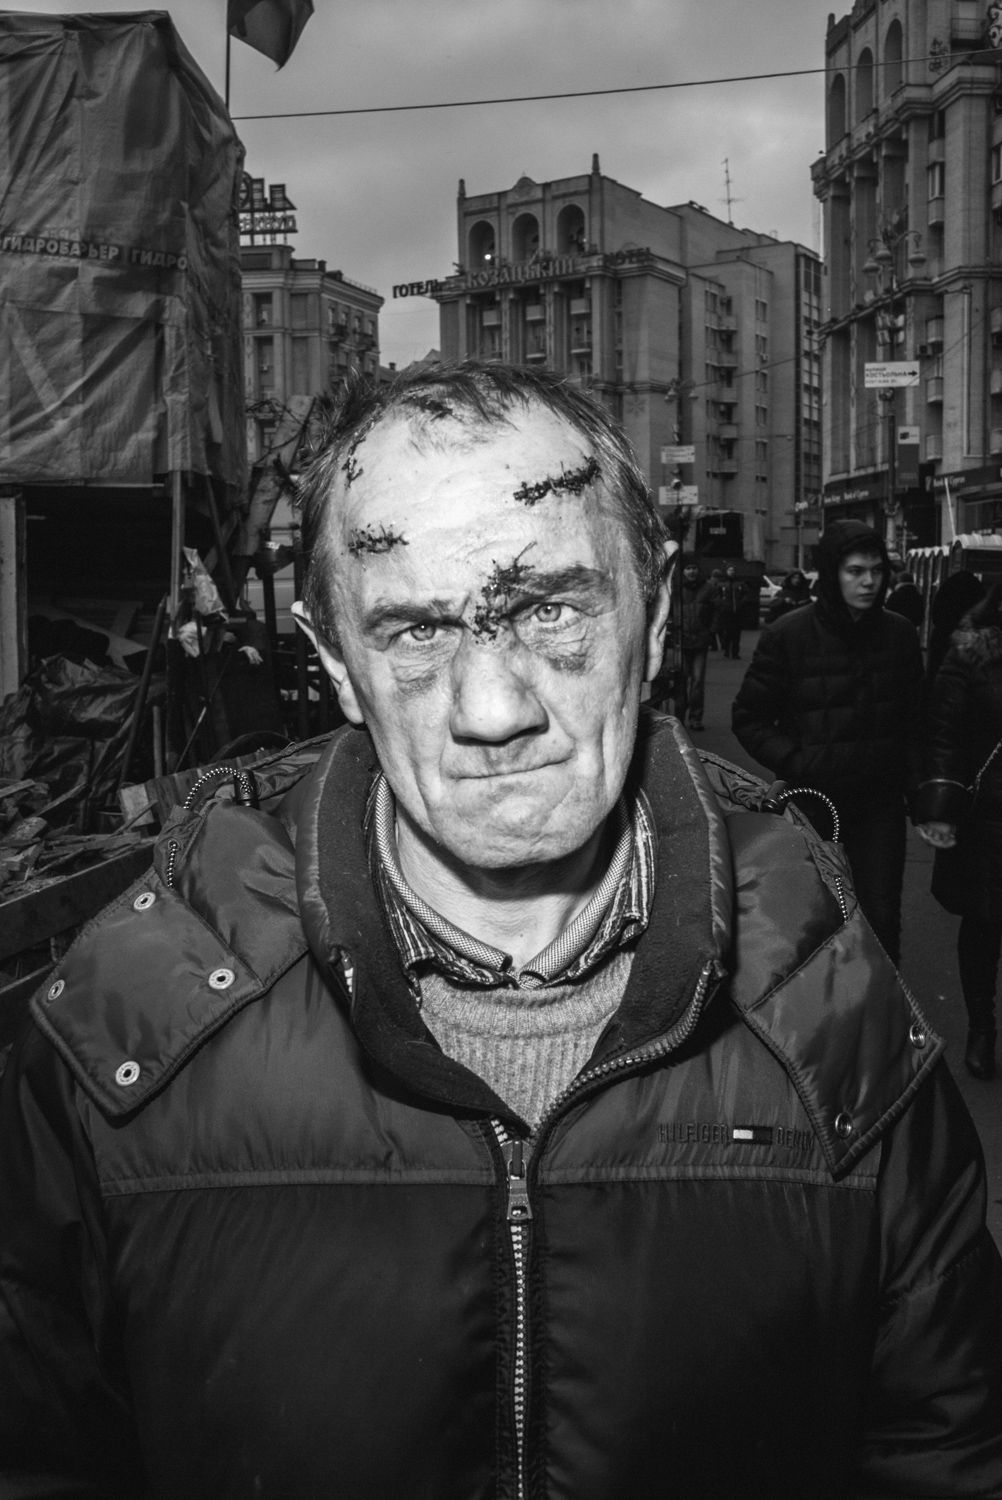 On February 18, 2014, bloody battles began in Kiev, Ukraine. I watched the traumatized people pay tribute to their heroes who died in the fight for freedom and sovereignty.